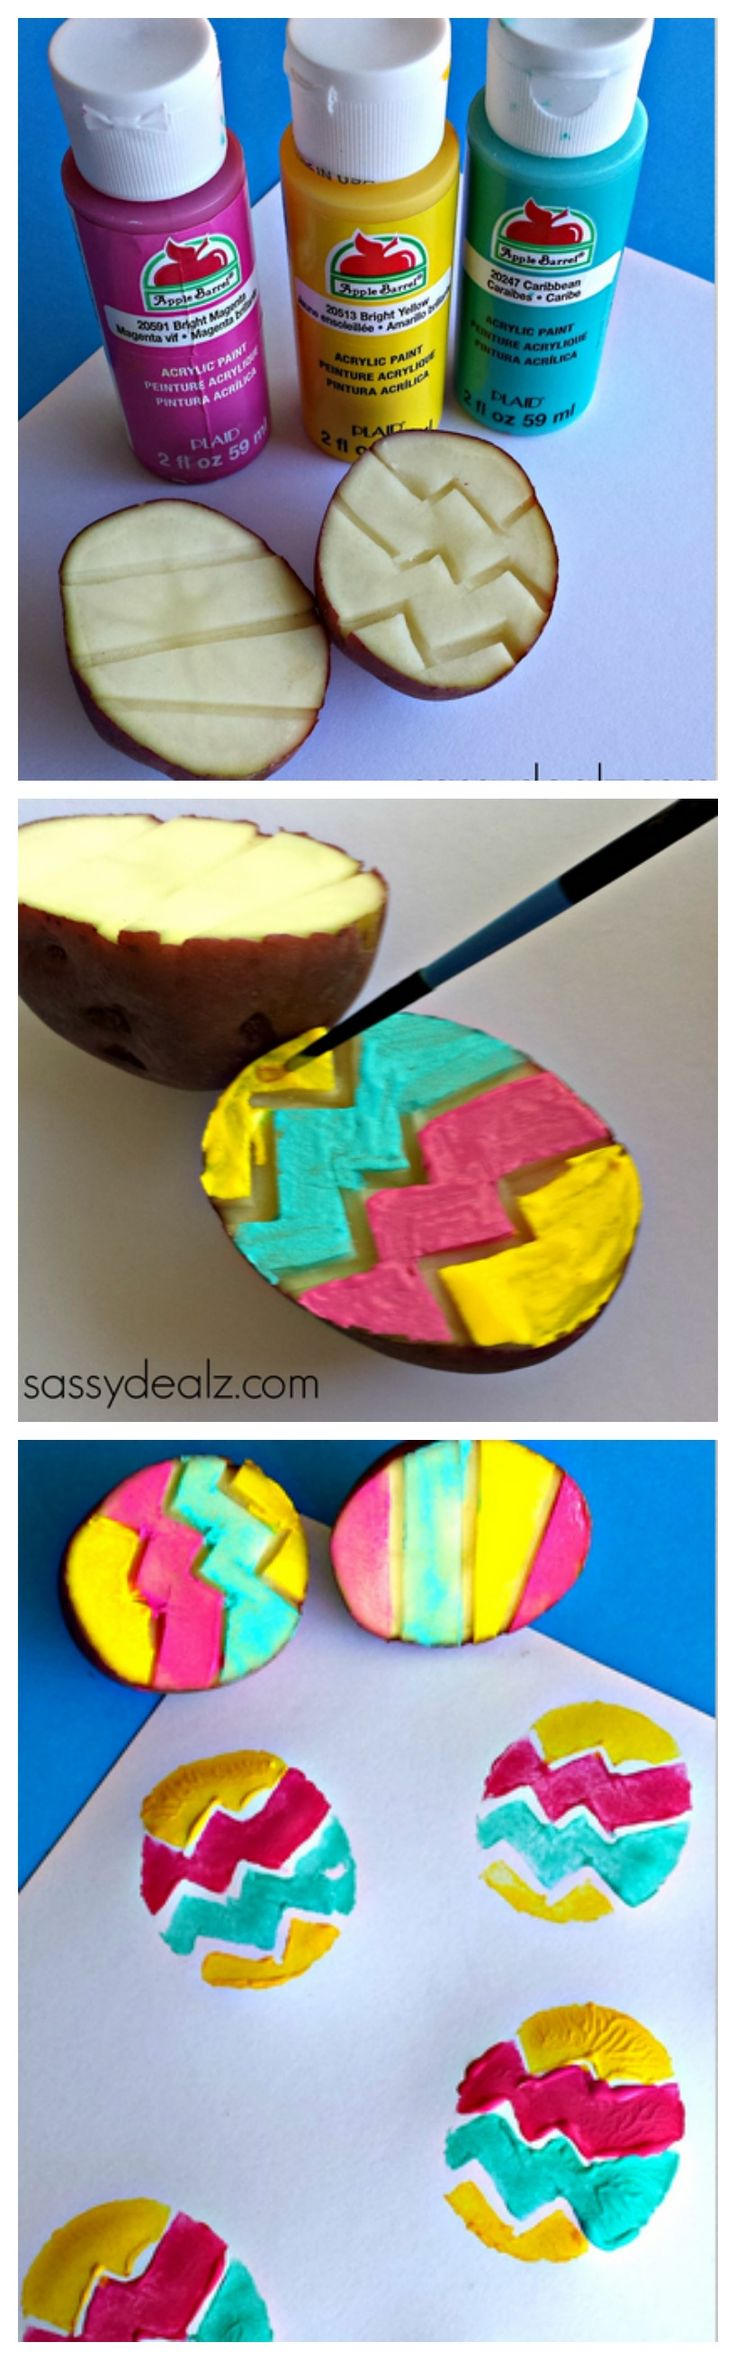 Colorful Zig zag potato easter egg stamping craft! #Easter craft for kids #DIY | CraftyMorning.com